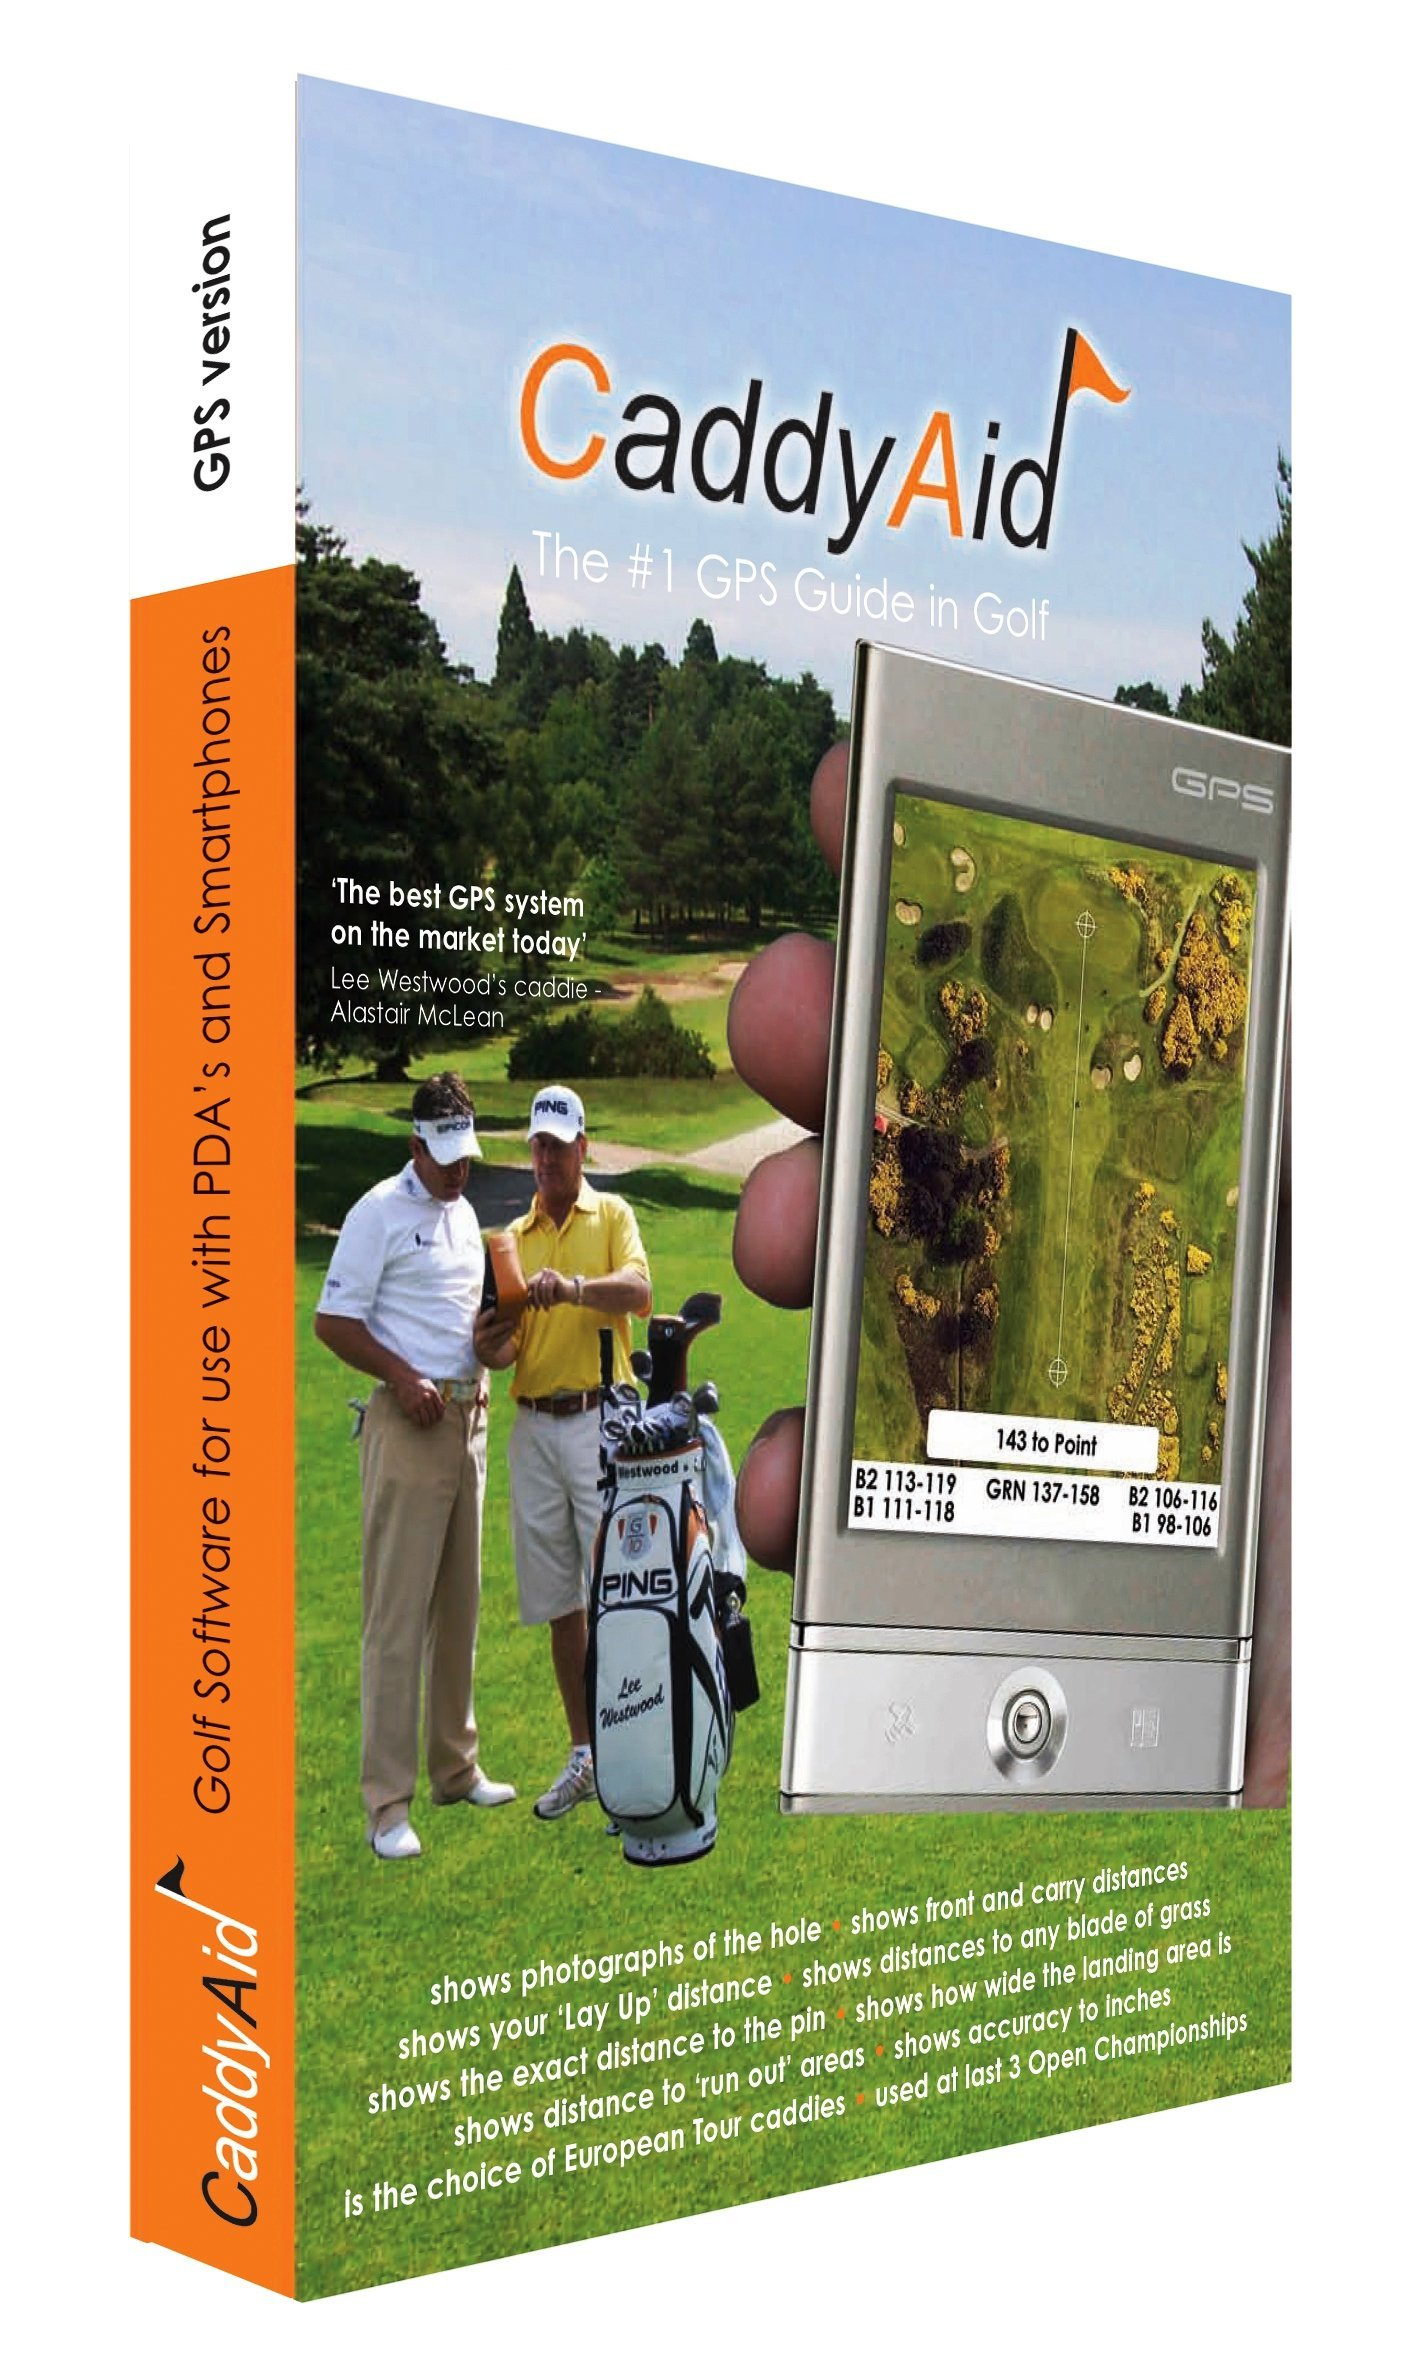 Caddy Aid Caddyaid Gps Software